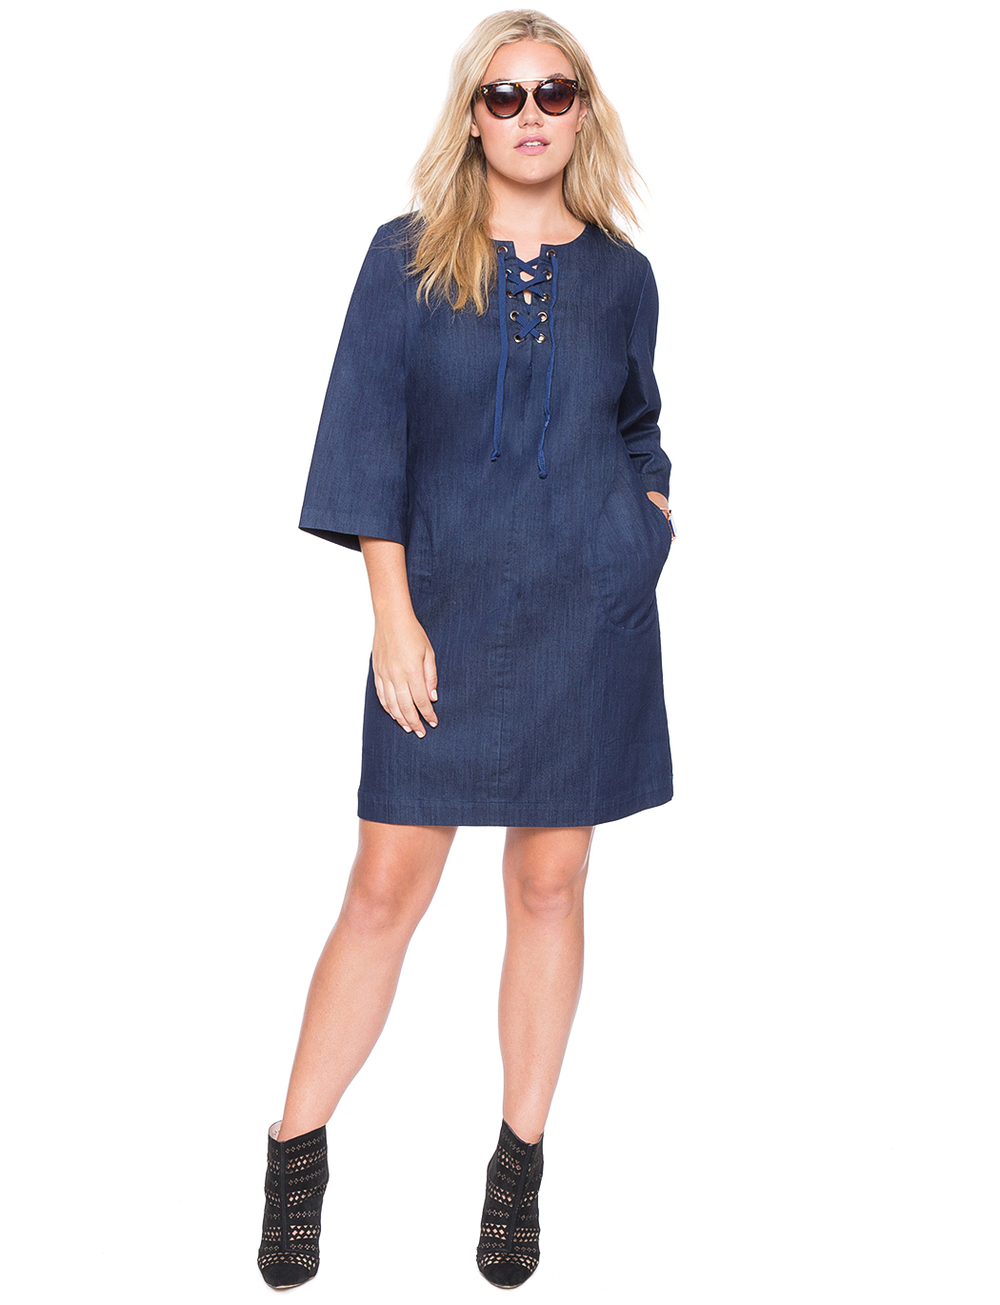 Laced Denim Dress. Eloquii. $89.90.